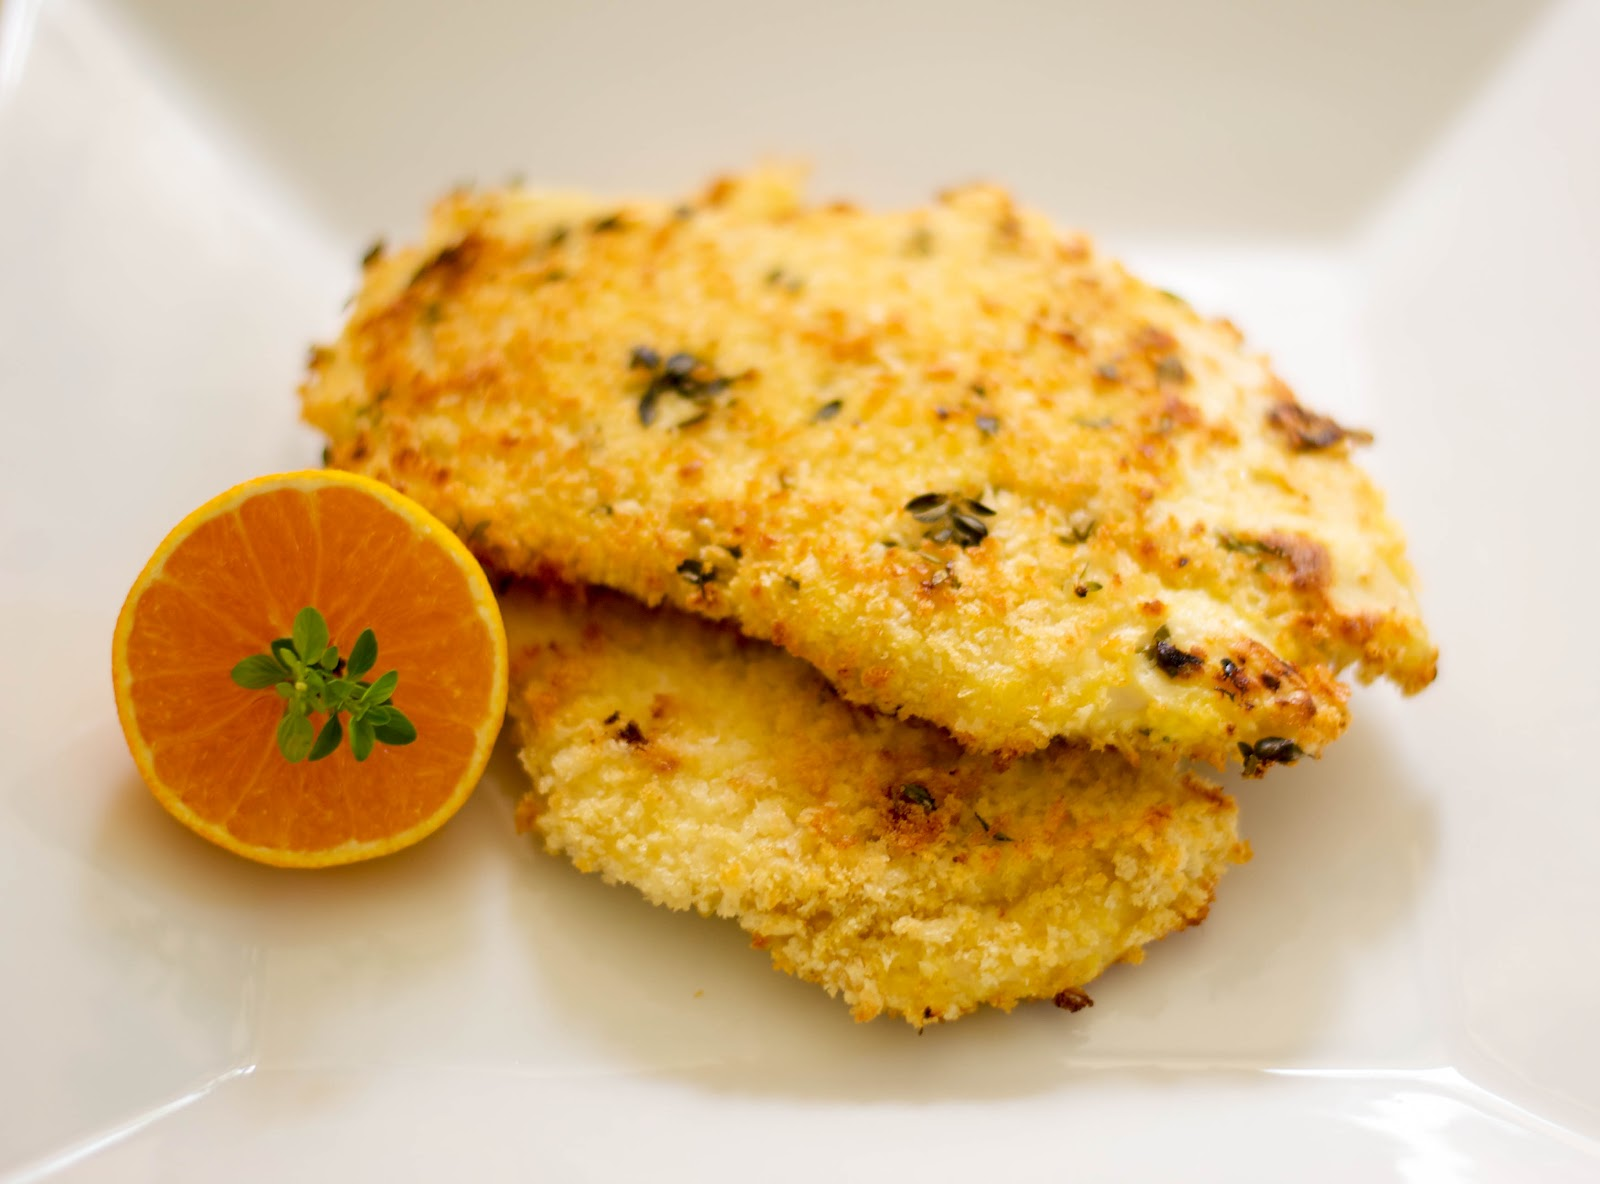 Clemen-Thyme Baked Chicken Cutlets - Carrie's Experimental Kitchen